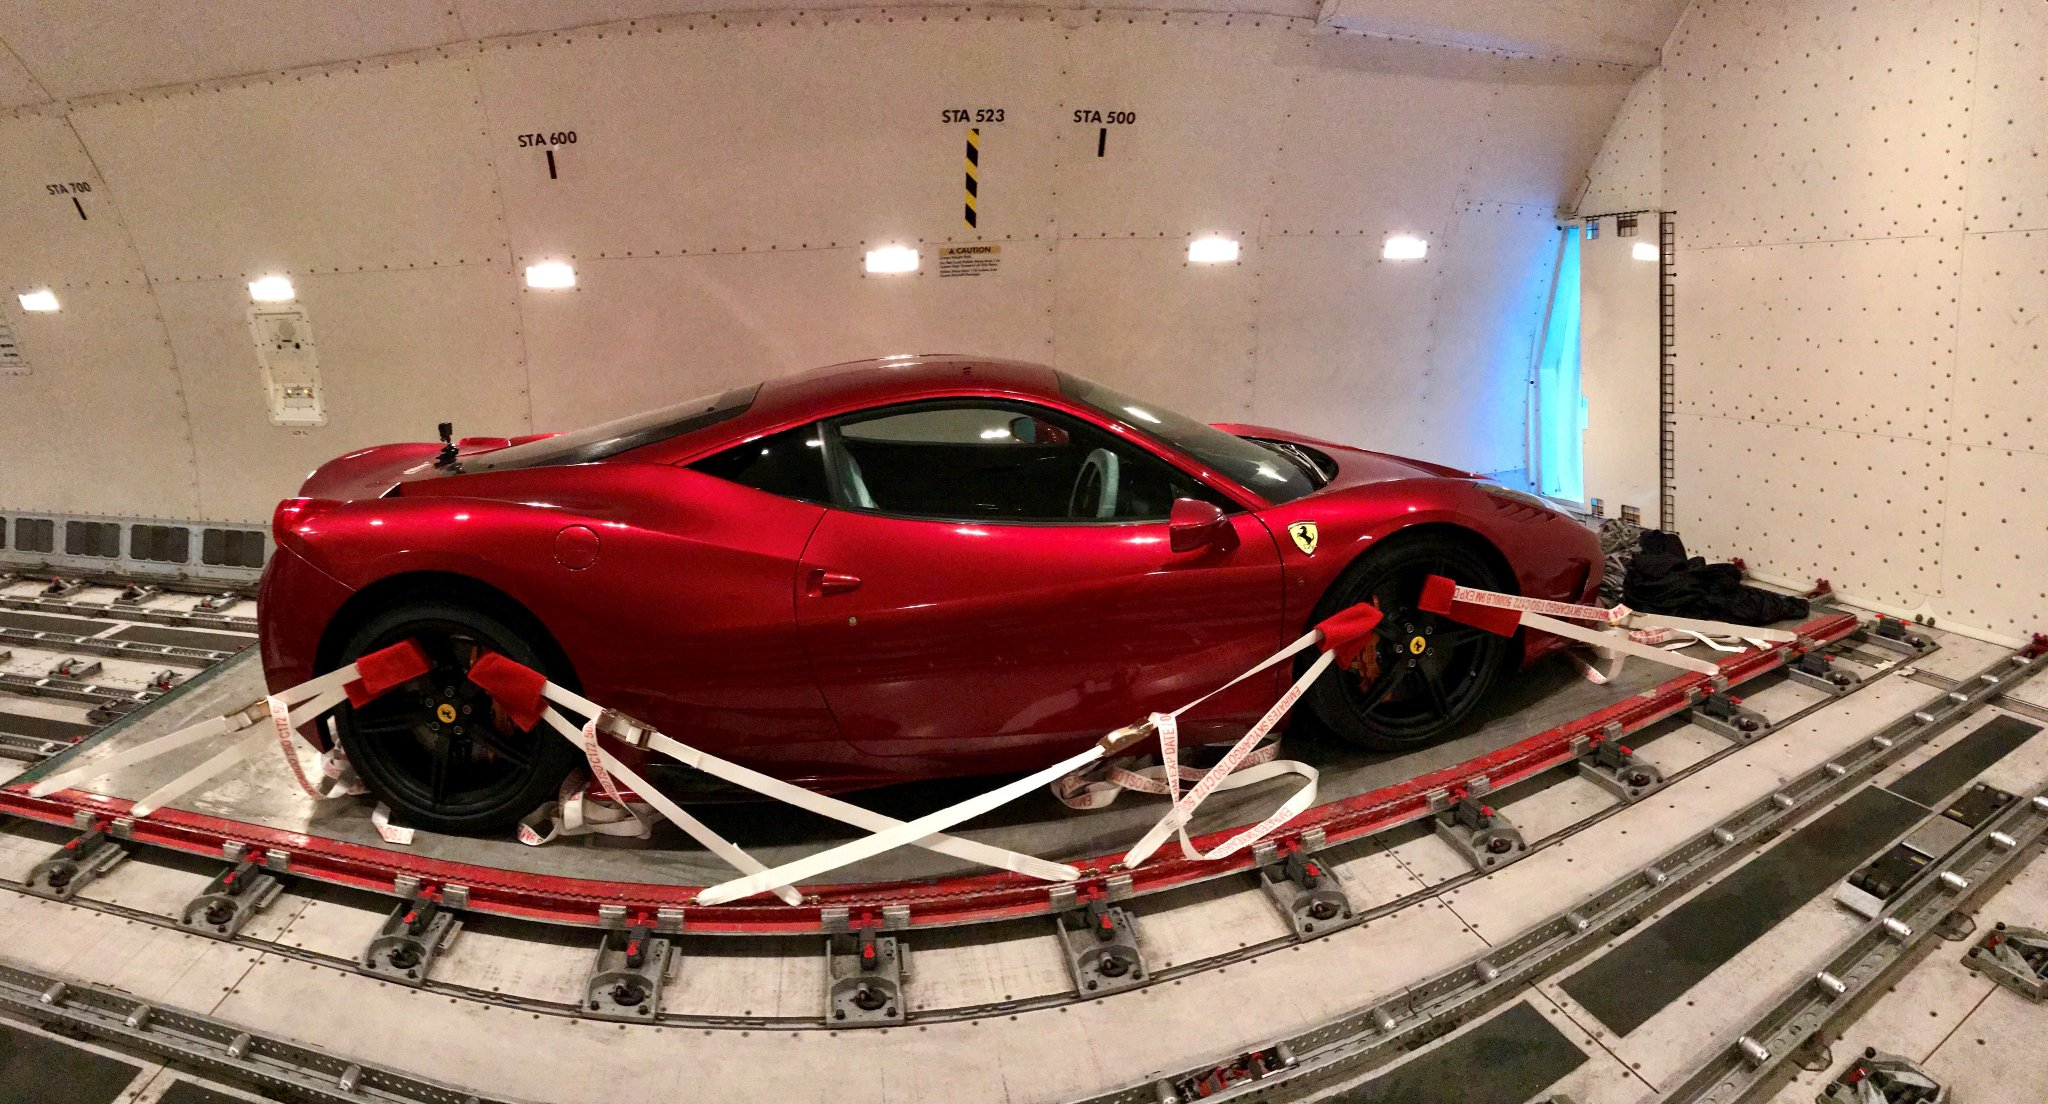 Heathrow Airport On Twitter Watch Mrjww S Account Of The Day His Ferrari 458 Speciale Flew Home Into Heathrow Https T Co O4paxhtojw Britainsbusiestairport Https T Co Nopakovg6b